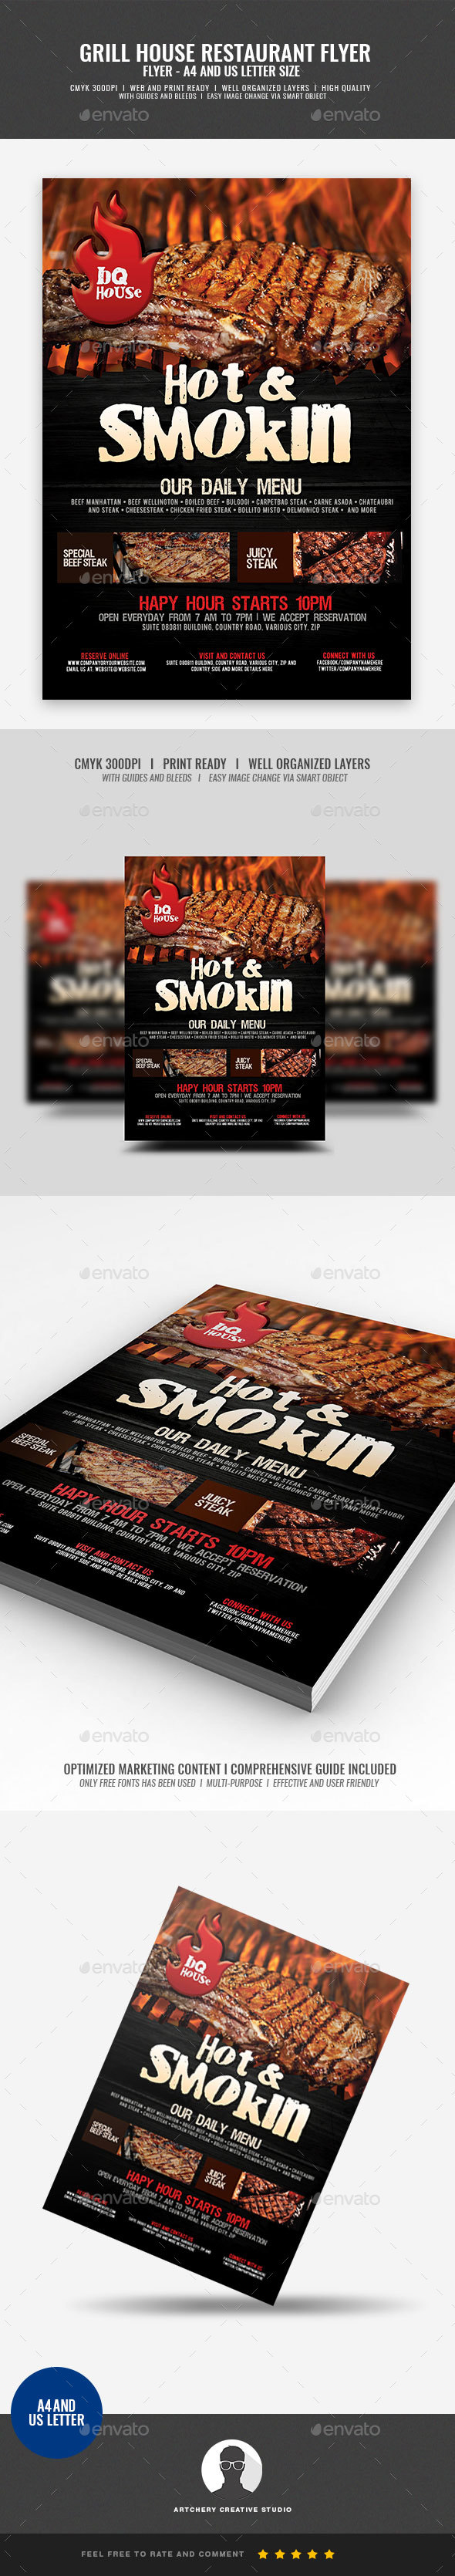 Steakhouse Grill Restaurant  Flyer - Restaurant Flyers